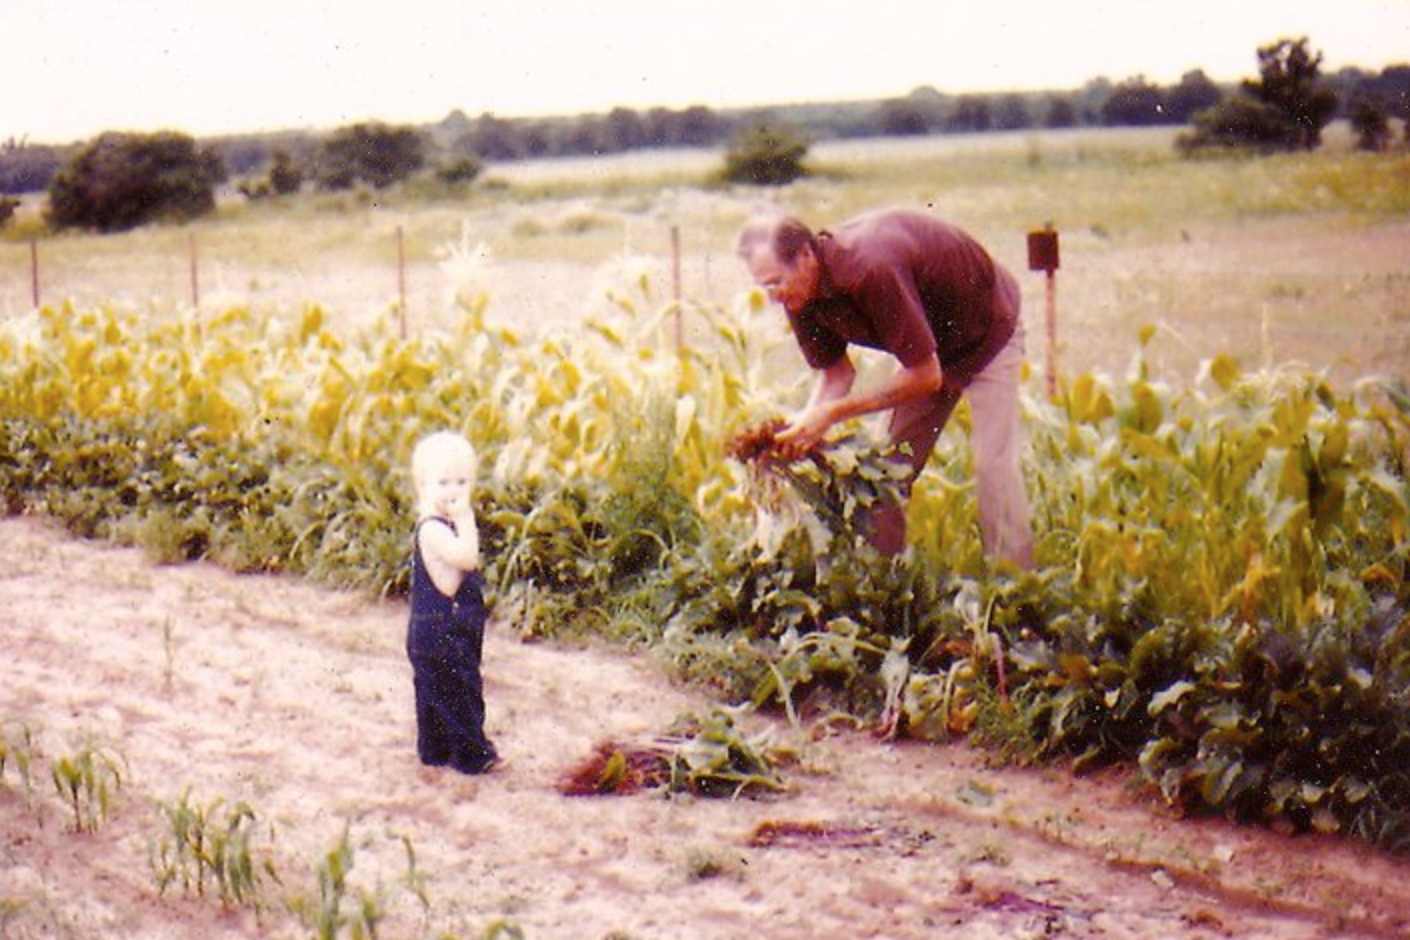 Digging up beets with her granddad in Mansfield, Texas.